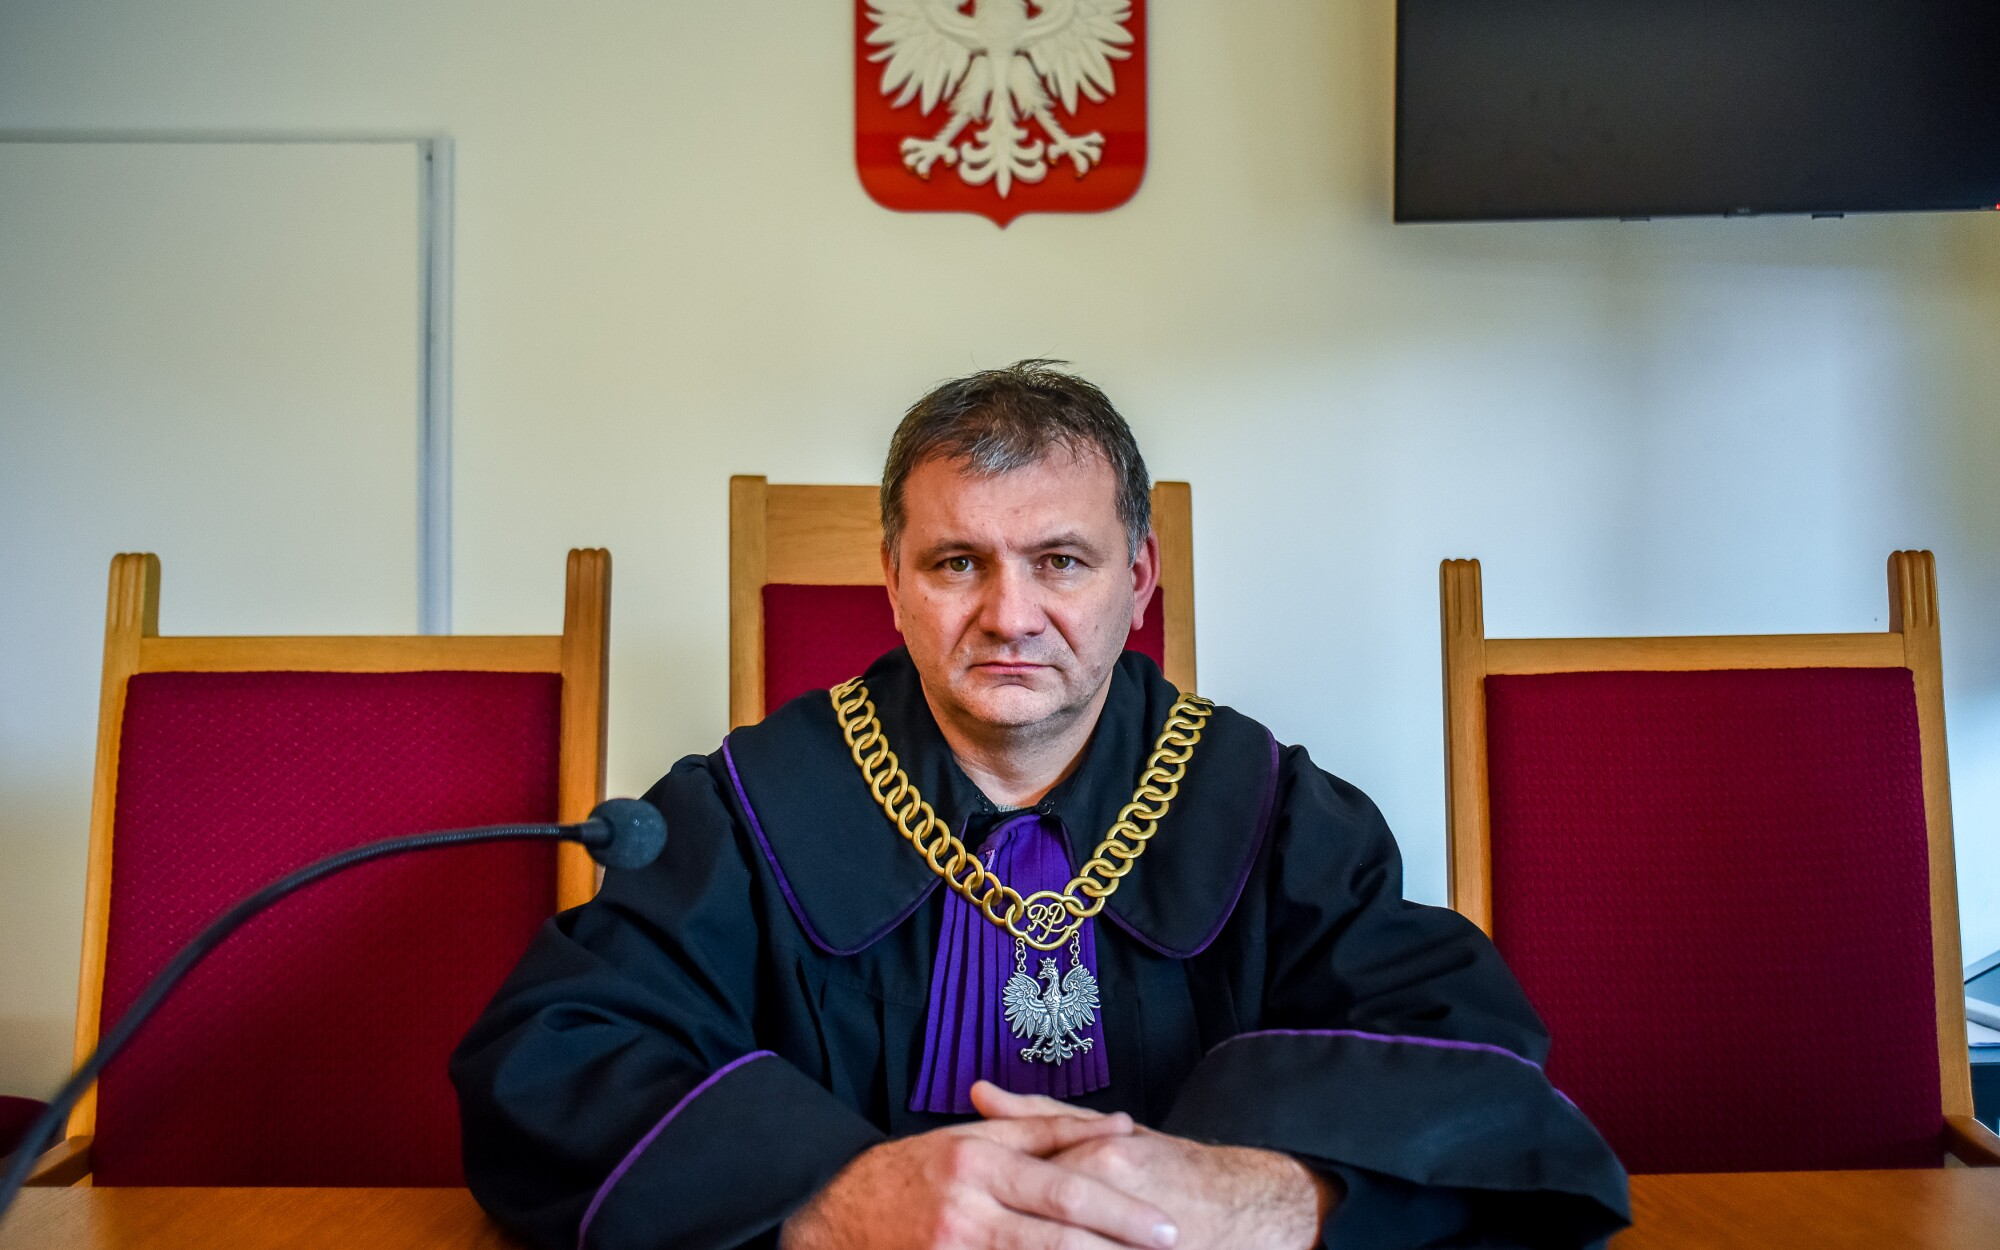 Is Poland veering into totalitarianism? This judge thinks so - Los Angeles Times